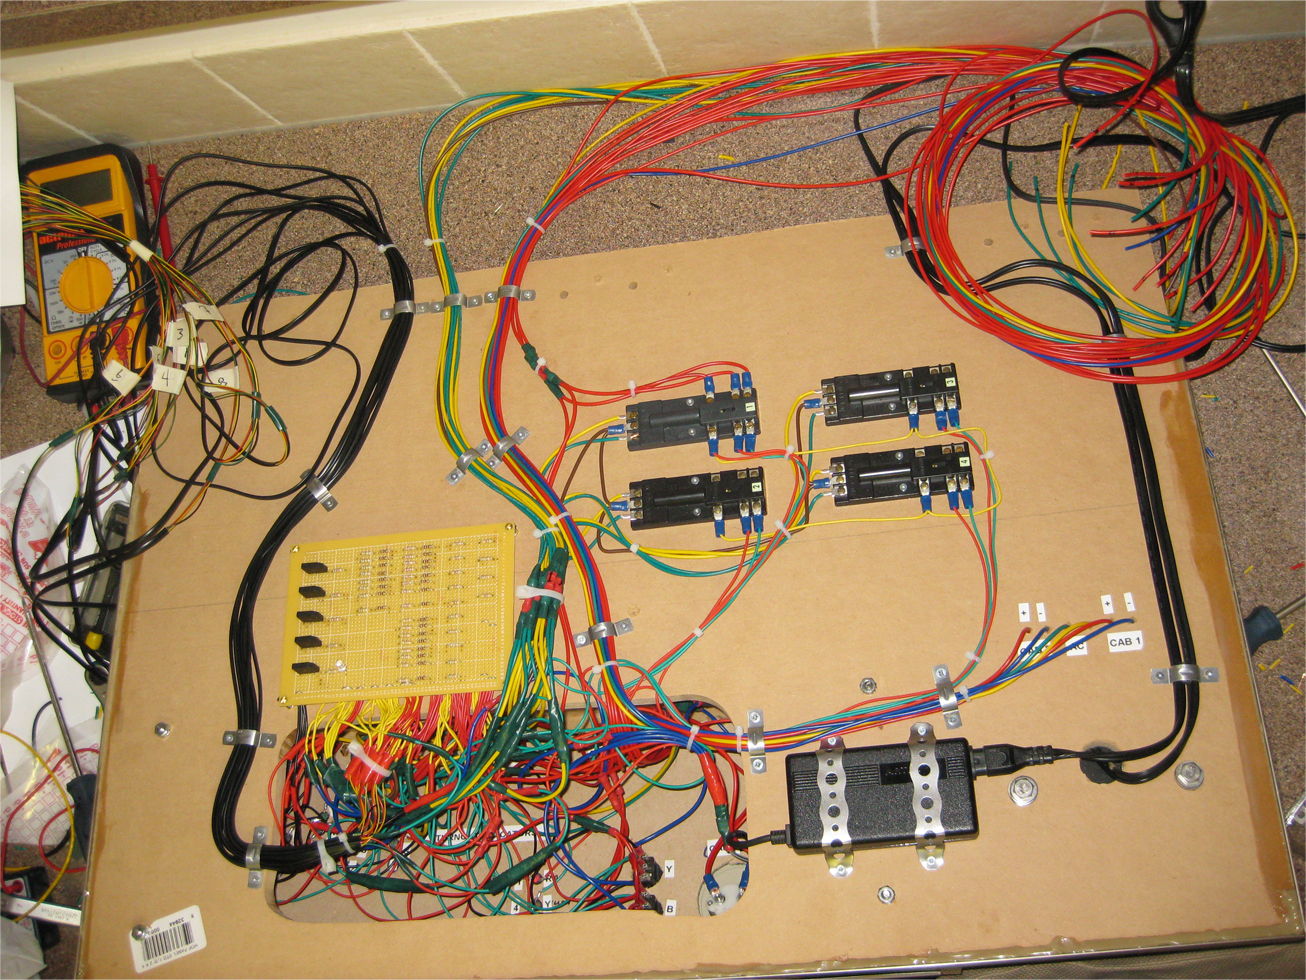 Wiring Atlas snap relays and other components together inside a model railroad control panel